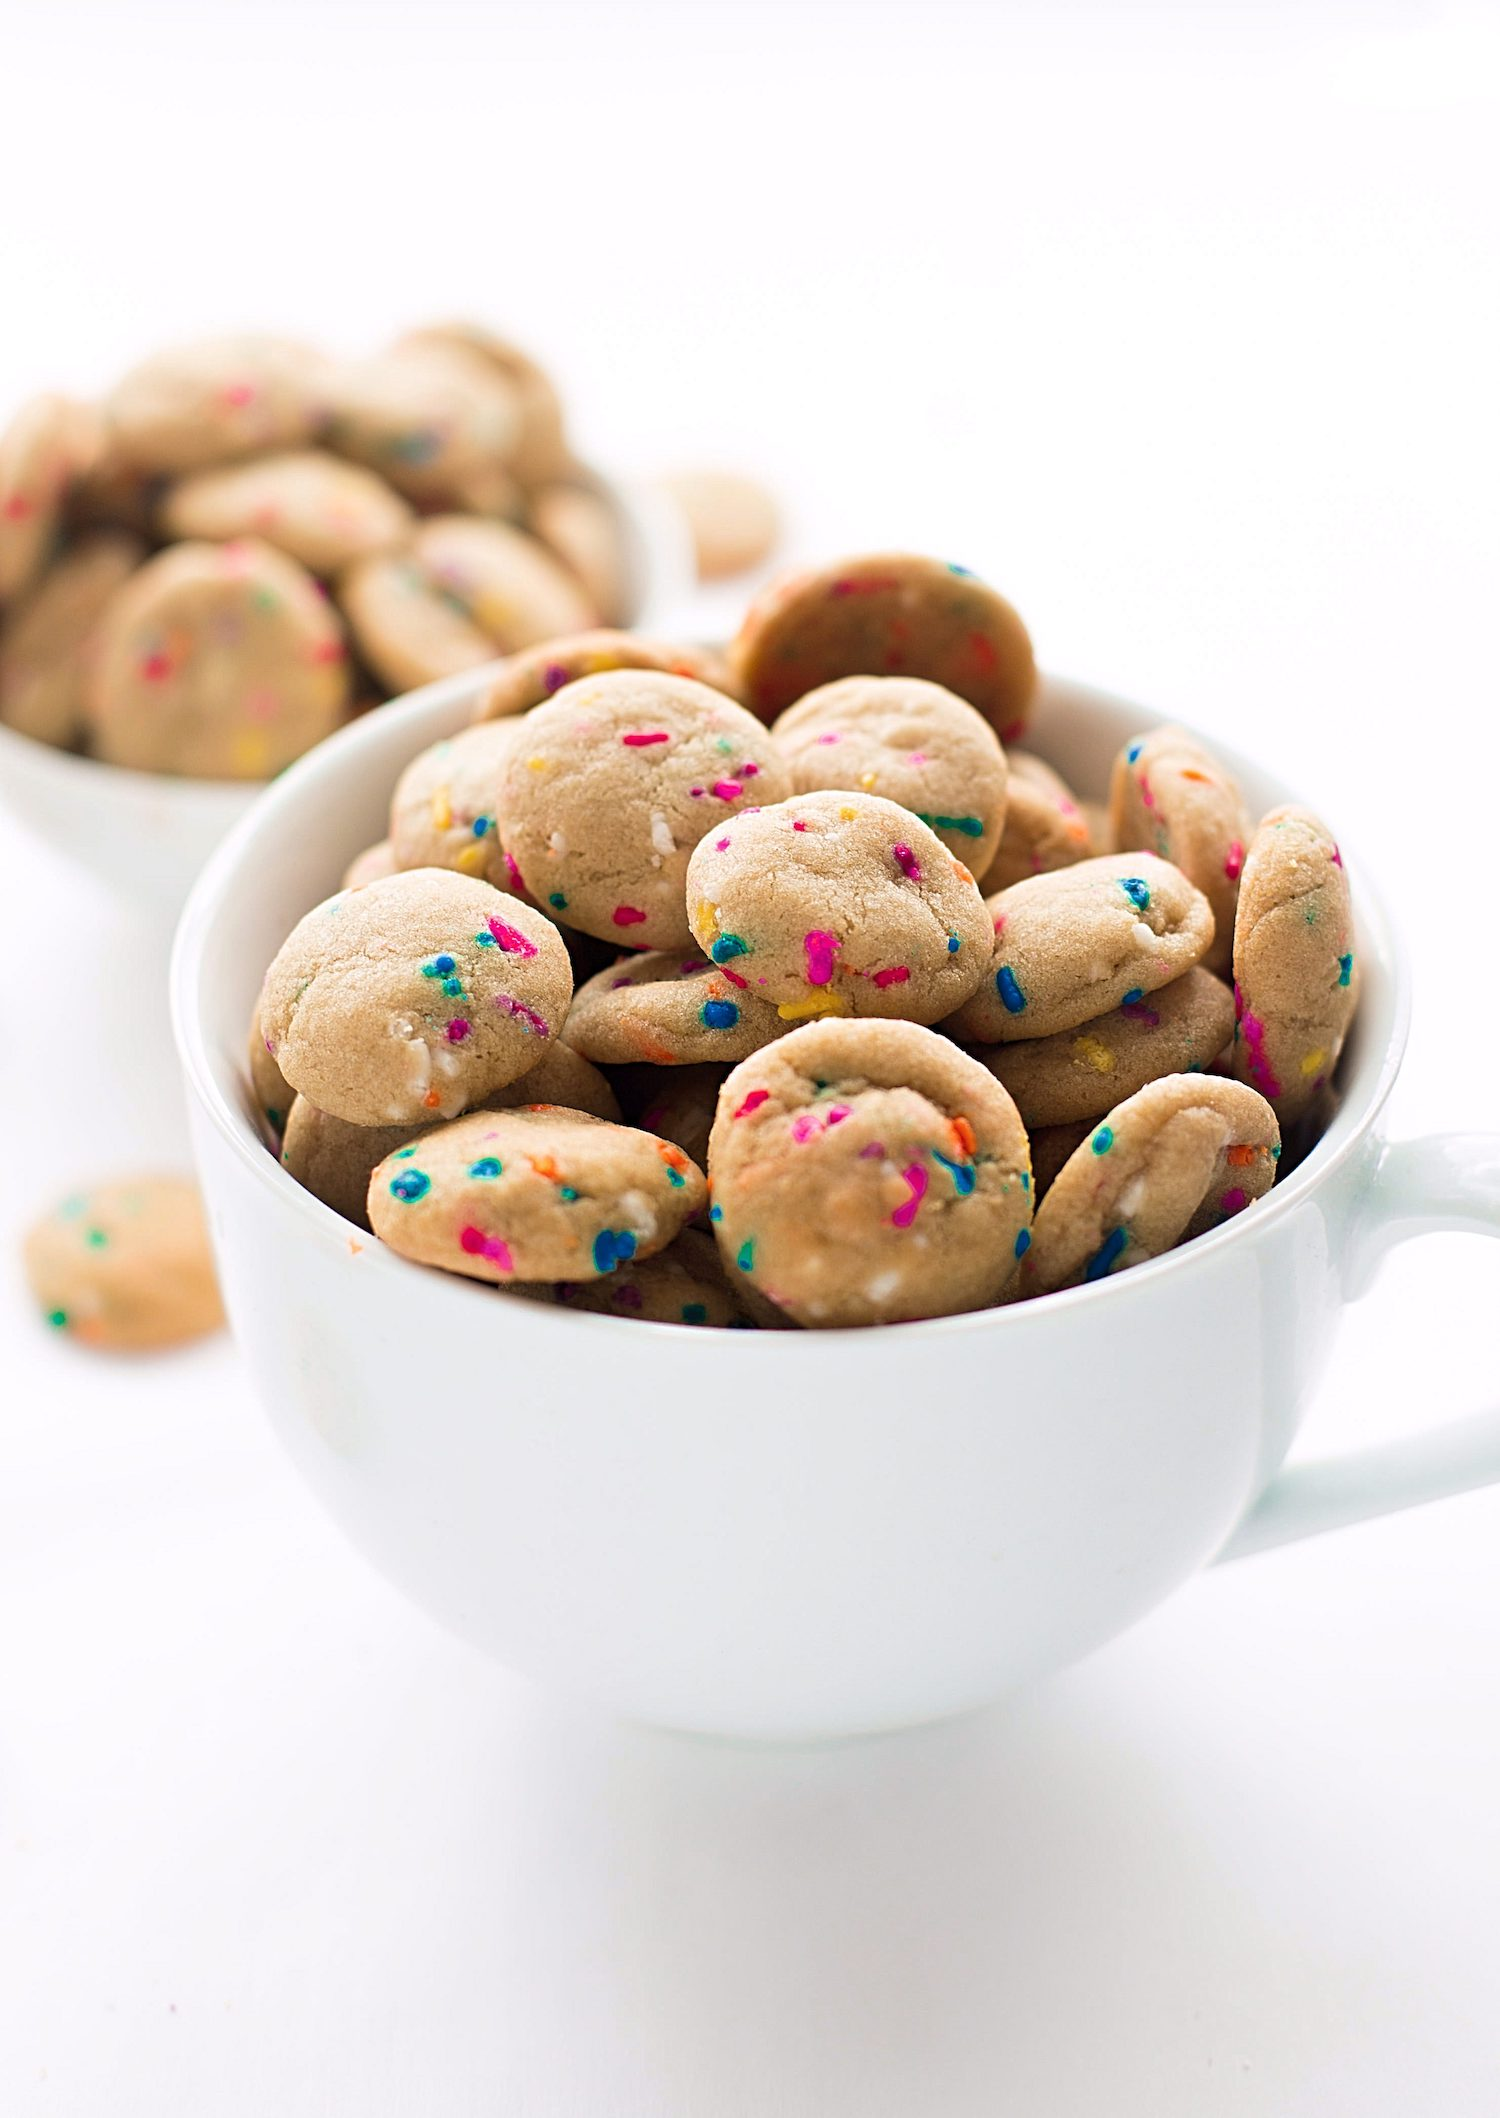 Soft Mini Funfetti Cookies: these one-bite, soft, chewy, sprinkle cookies are so easy to make and even easier to pop into your mouth repeatedly. | TrufflesandTrends.com